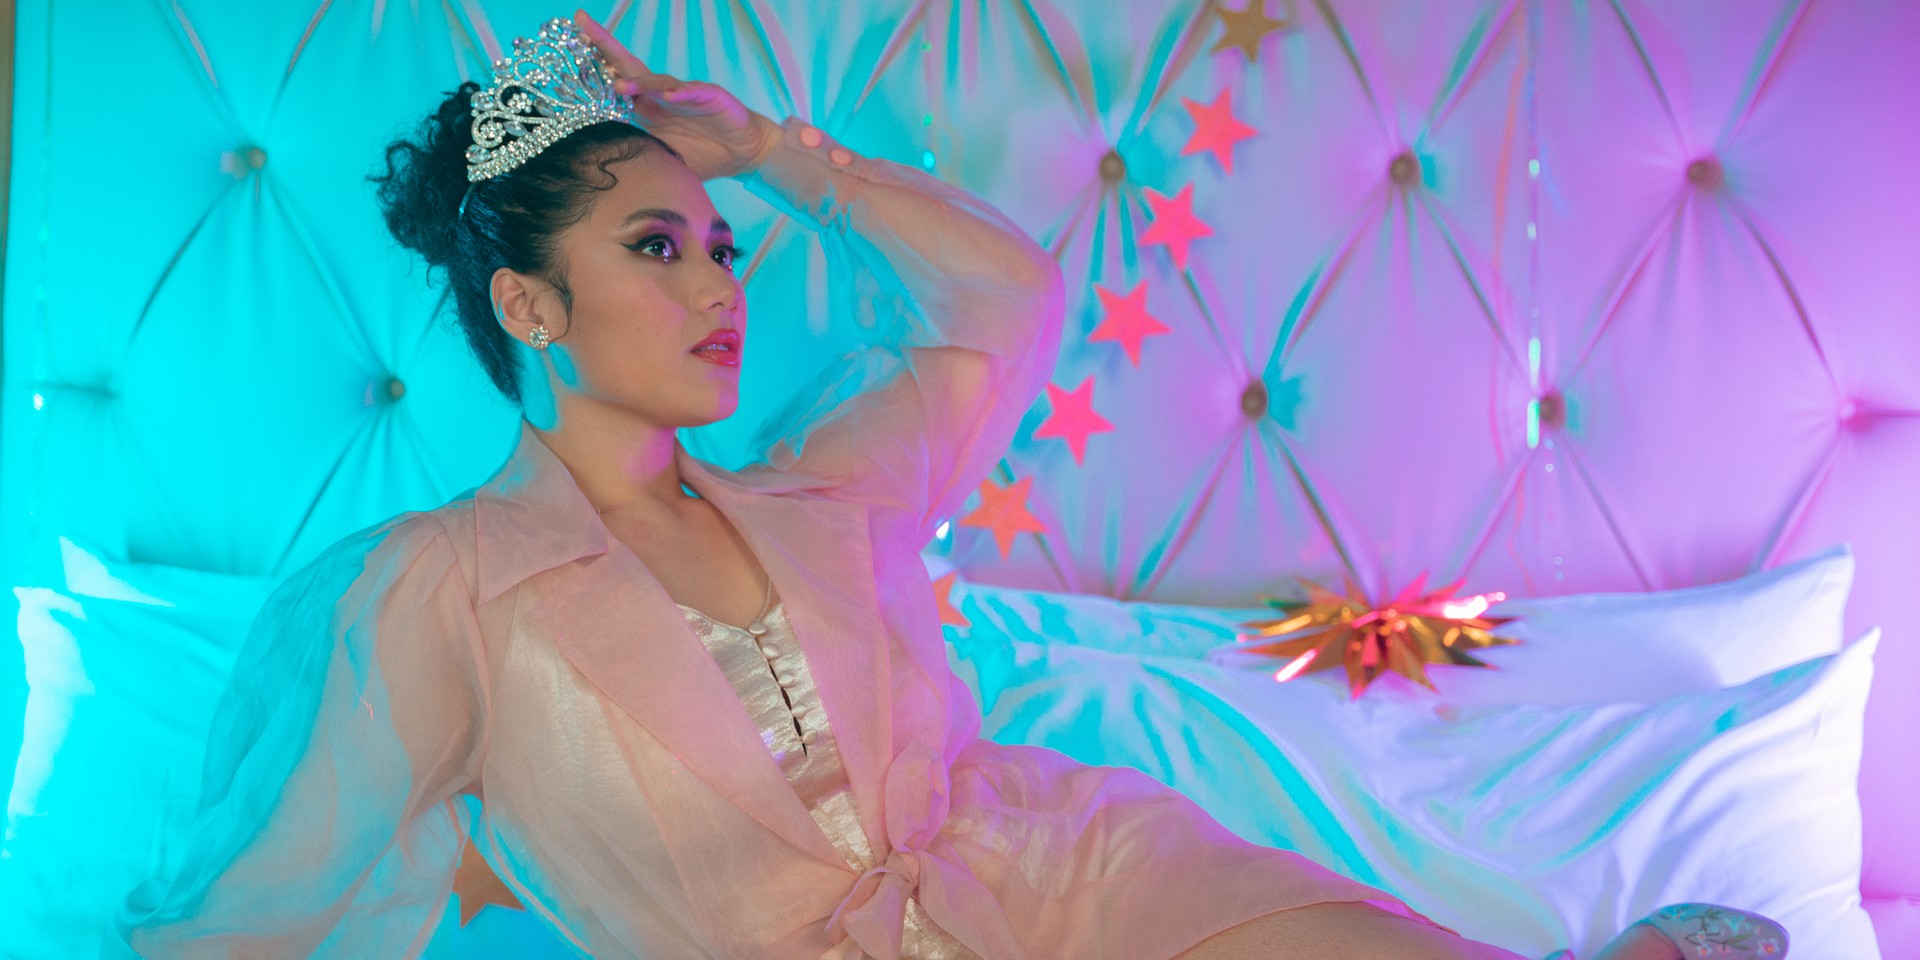 Filipino singer Ali Young debuts with 'craving,' the first-ever NFT single in Southeast Asia